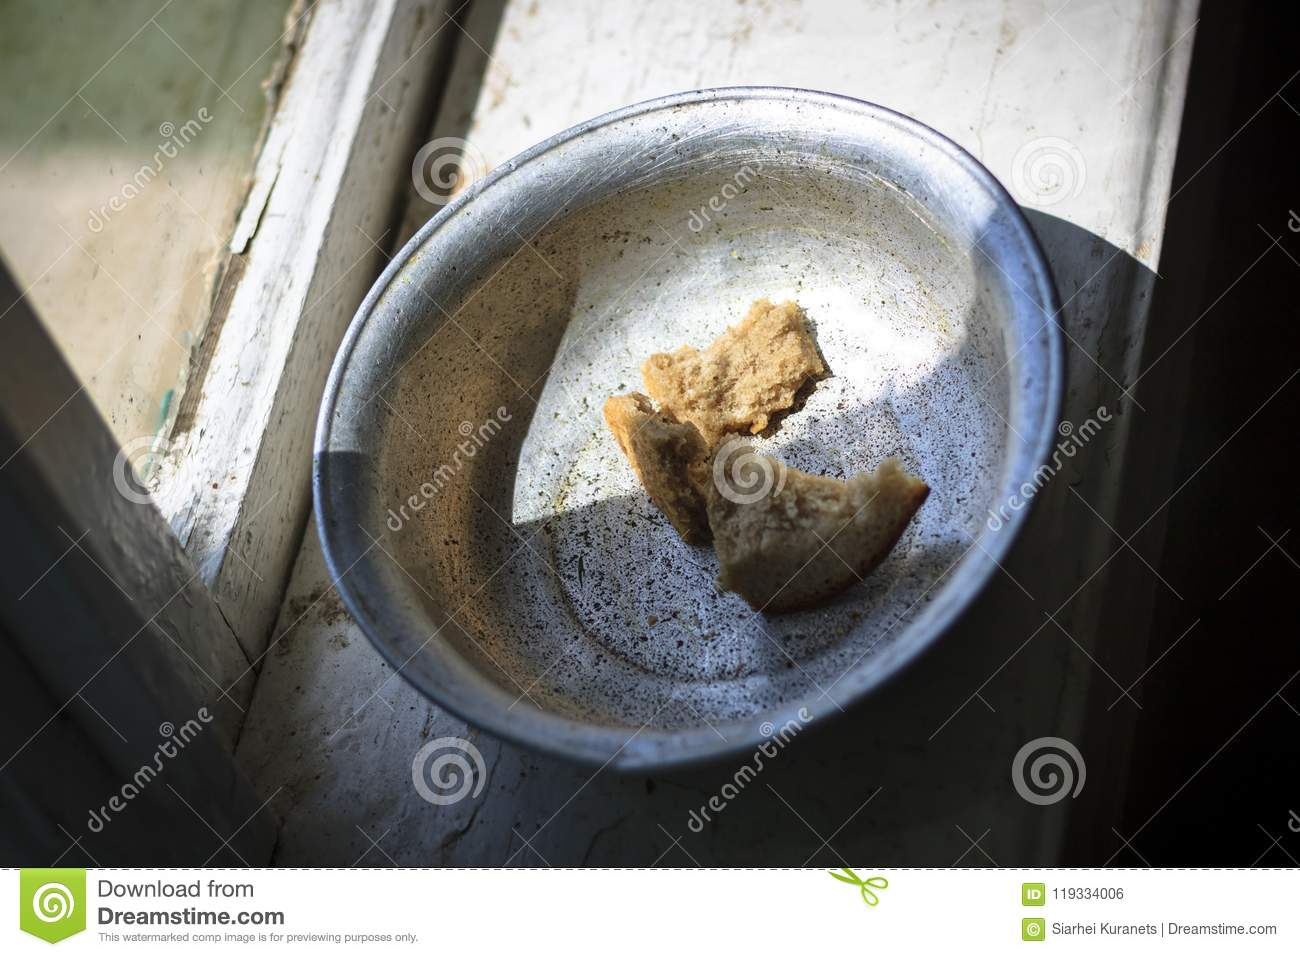 The old window from it drops sunlight. On the window an old aluminum bowl in it small pieces of bread